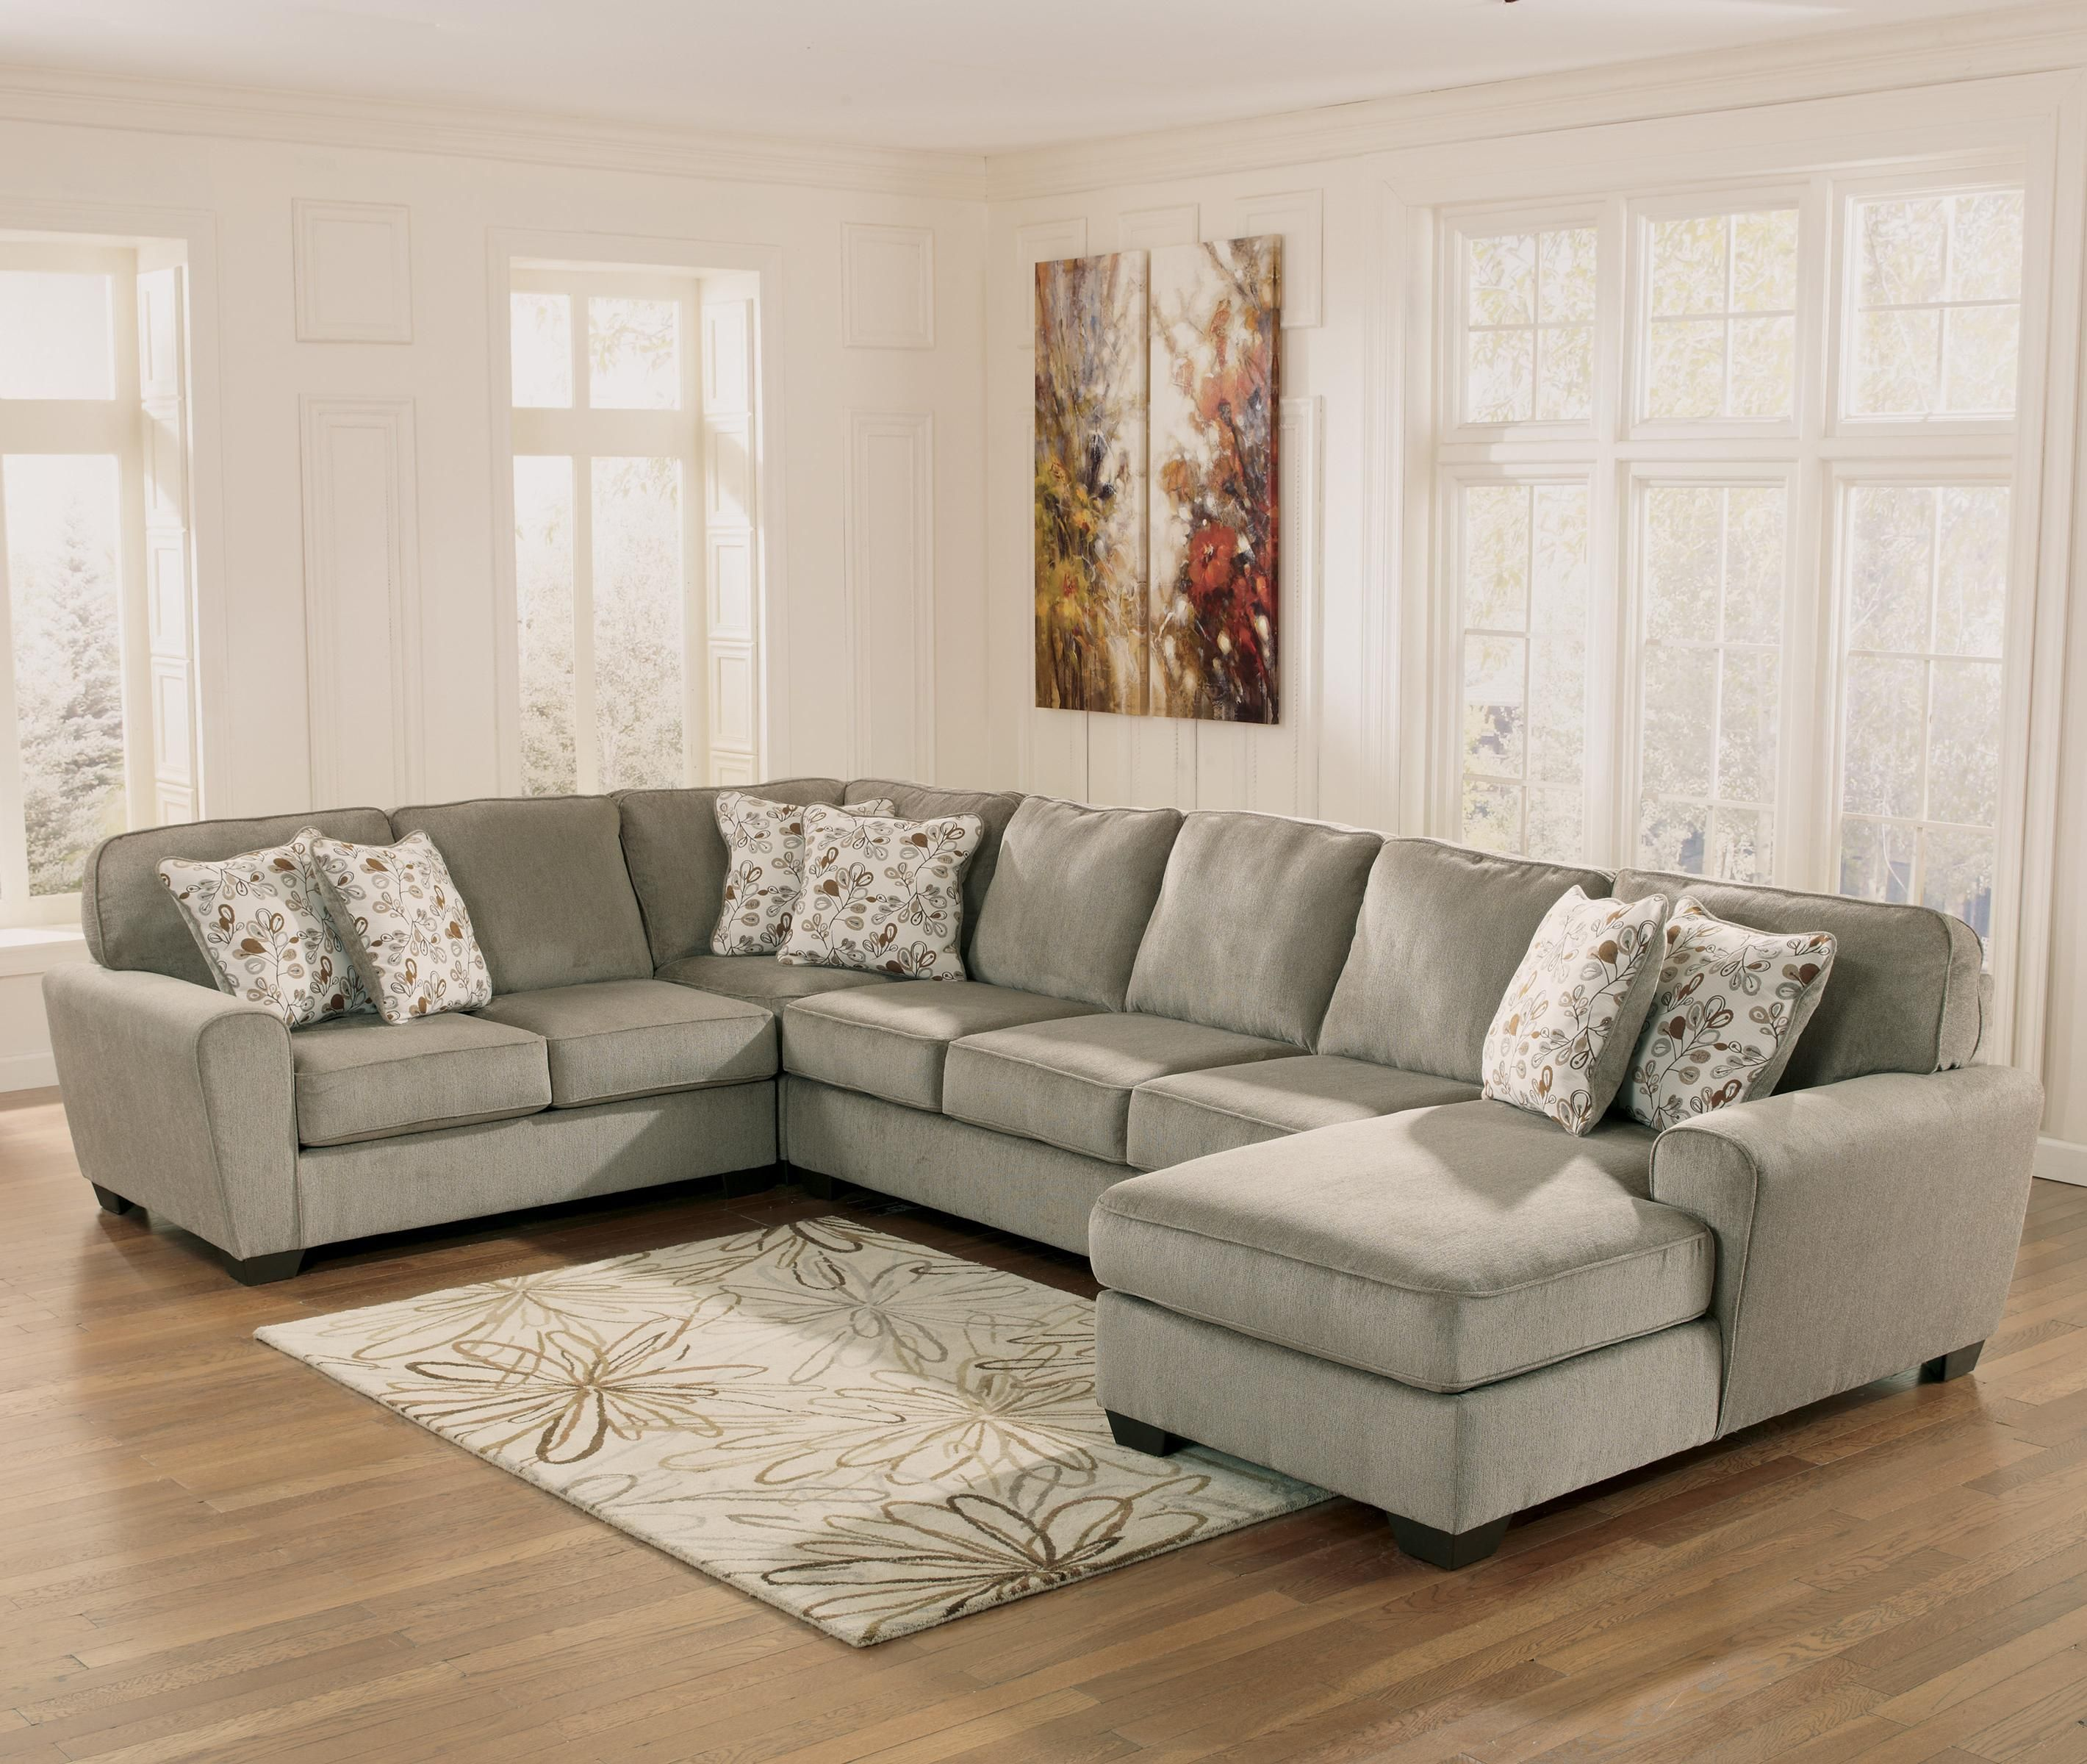 Patola Park - Patina 4-Piece Sectional with Right Chaise by Ashley Furniture jj : in a chaise and four - Sectionals, Sofas & Couches